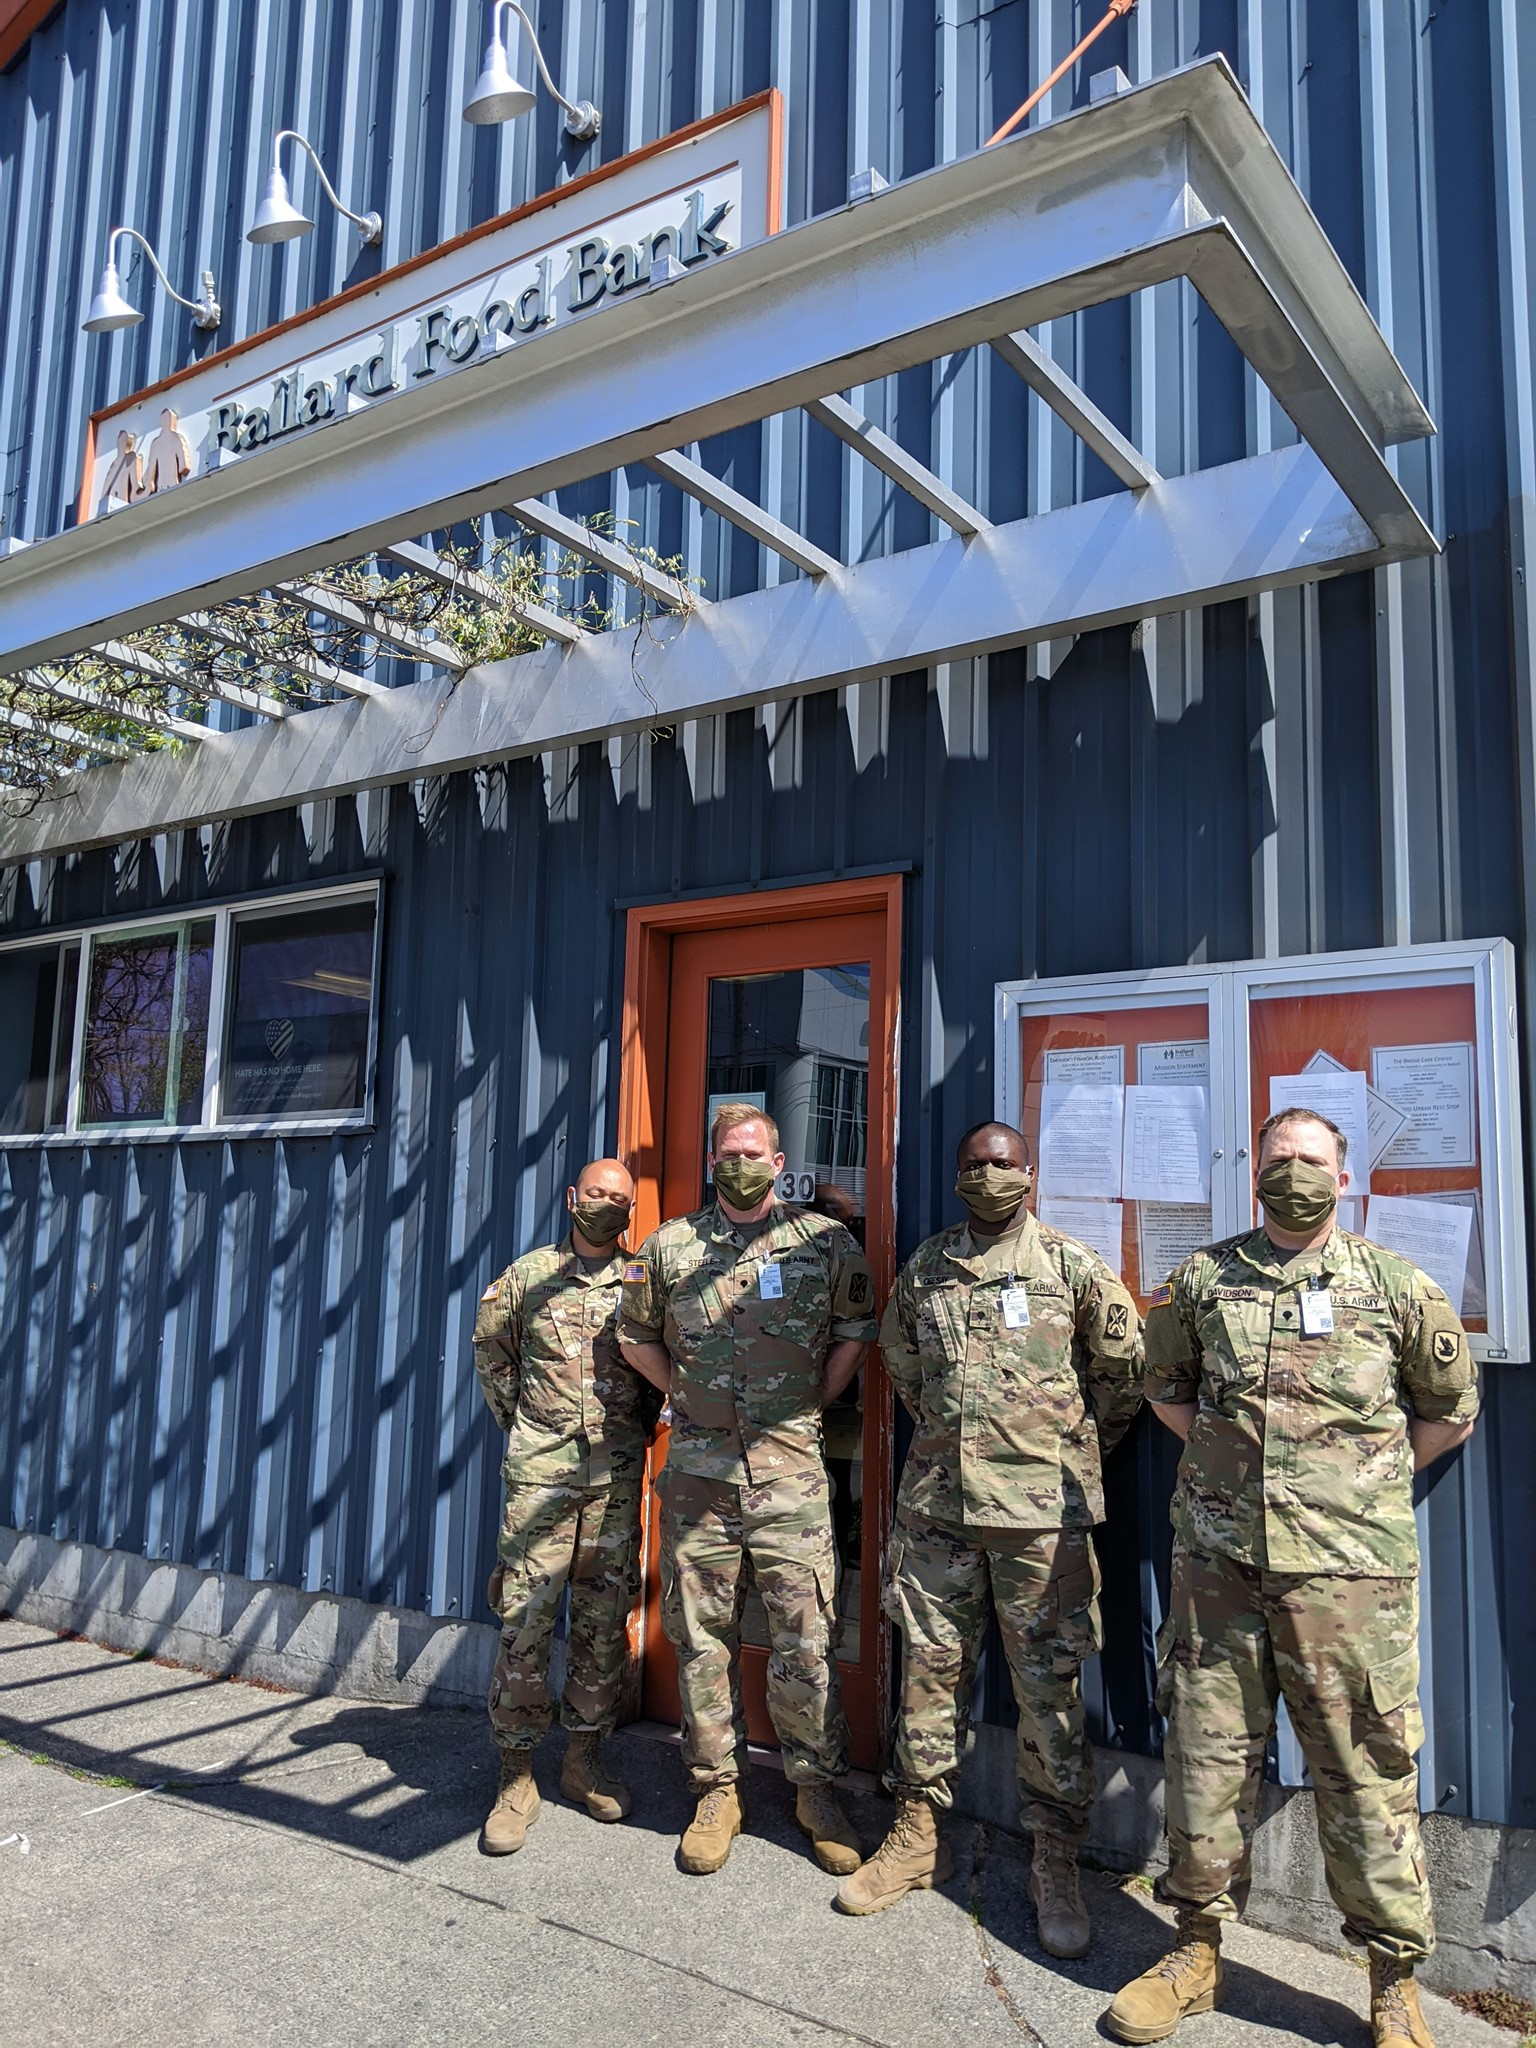 Soldiers at food bank